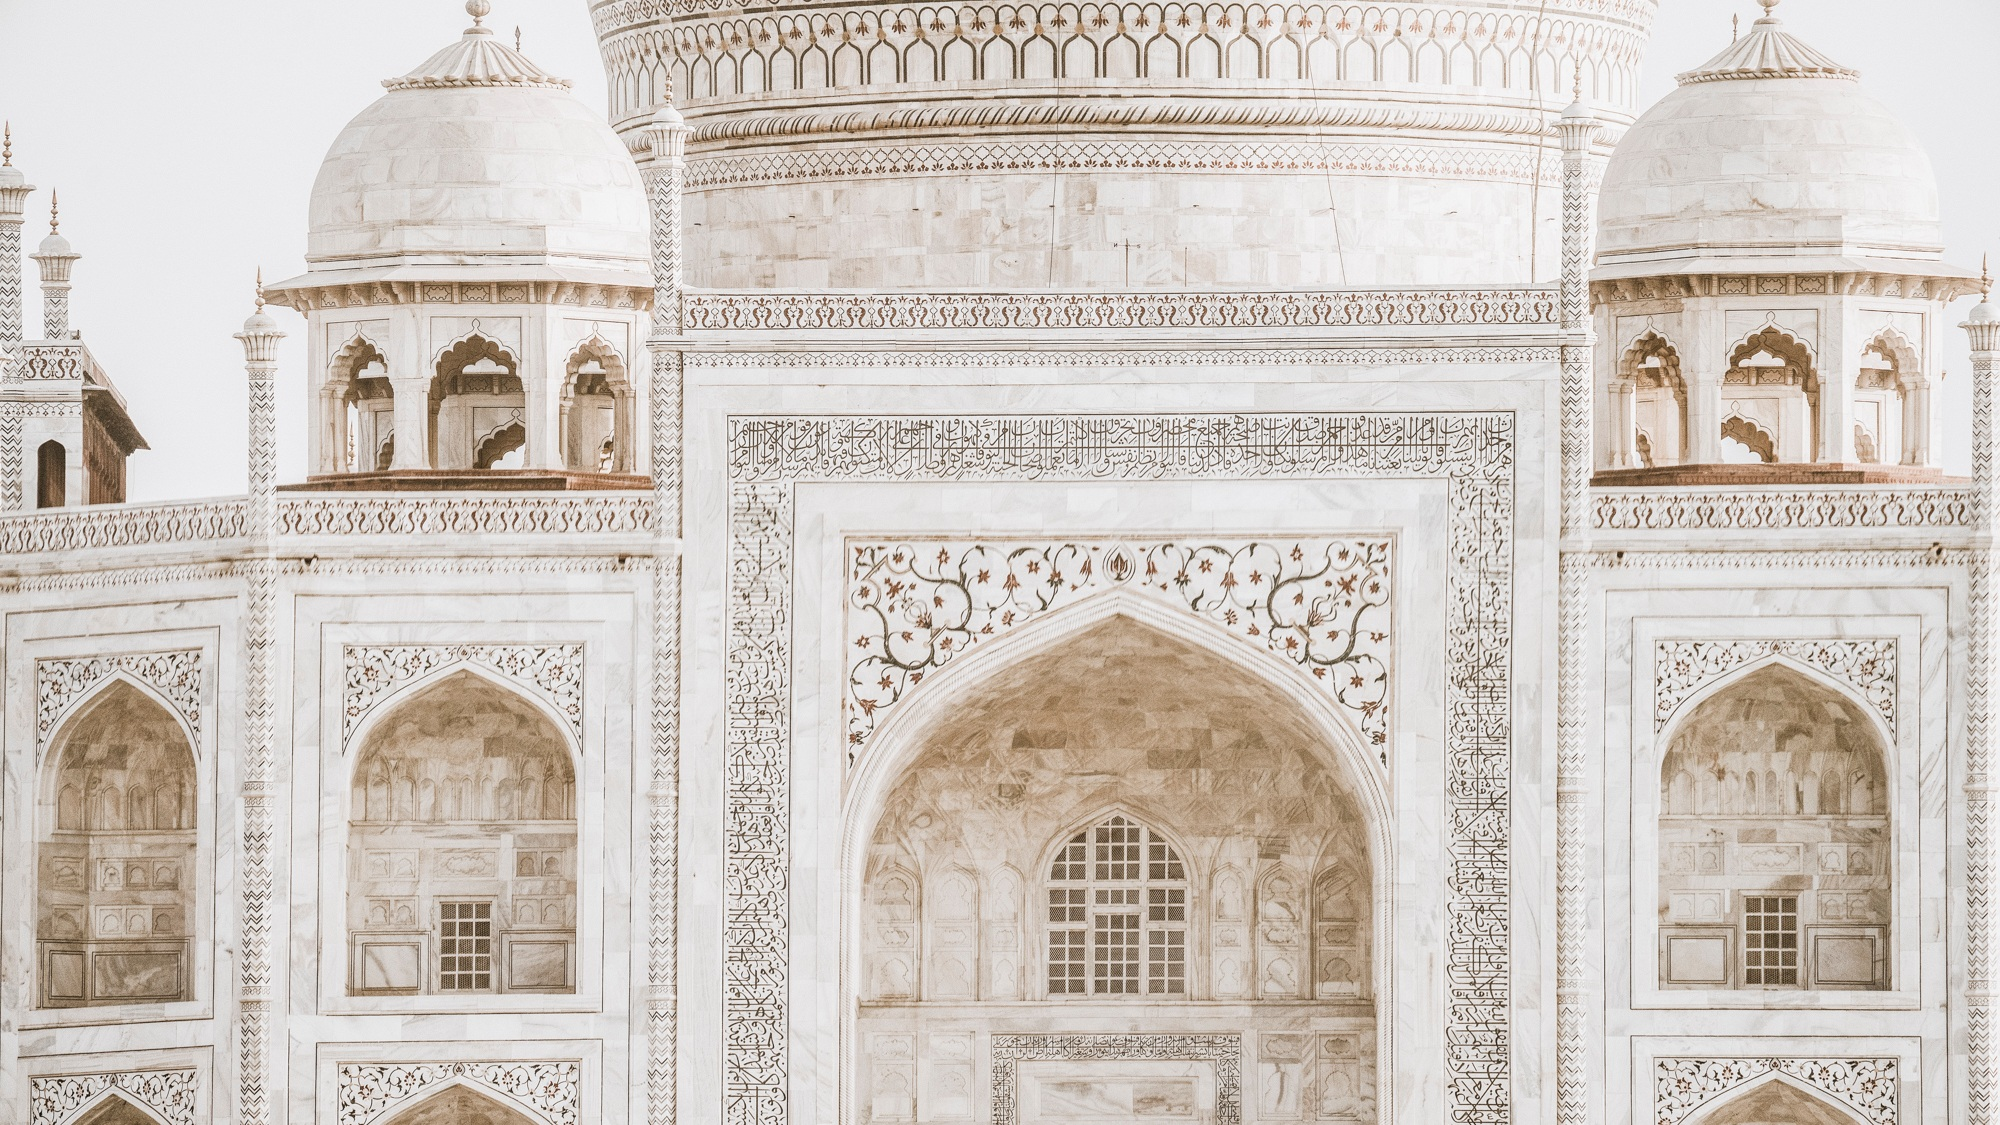 Remnants of the Mughals - Rajasthan and Uttar Pradesh are world renowned for being two of the richest Indian states when it comes to architectural marvels. The feats by Mughal rulers depict an intense history that traces back to the very beginning of the founding of the Indus Valley. Thread through the marvelous palaces, red forts and marble mausoleums with expert guides to unlock the engineering secrets of the time. At sunrise, meet with an architect at the Taj Mahal to learn about the complex making of this majestic building. In the Pink City, stroll through the colorful hallways of Jaipur's royal havelis, the seat of the Maharaja of Jaipur. Cross the Thar Desert, passing through the Blue City of Jodhpur, to reach the fortified town of Jaisalmer. The 12th century sandstone fort stands as a symbol of Rajasthan's golden era, intricately carved windows, embellished doors and grand walls.